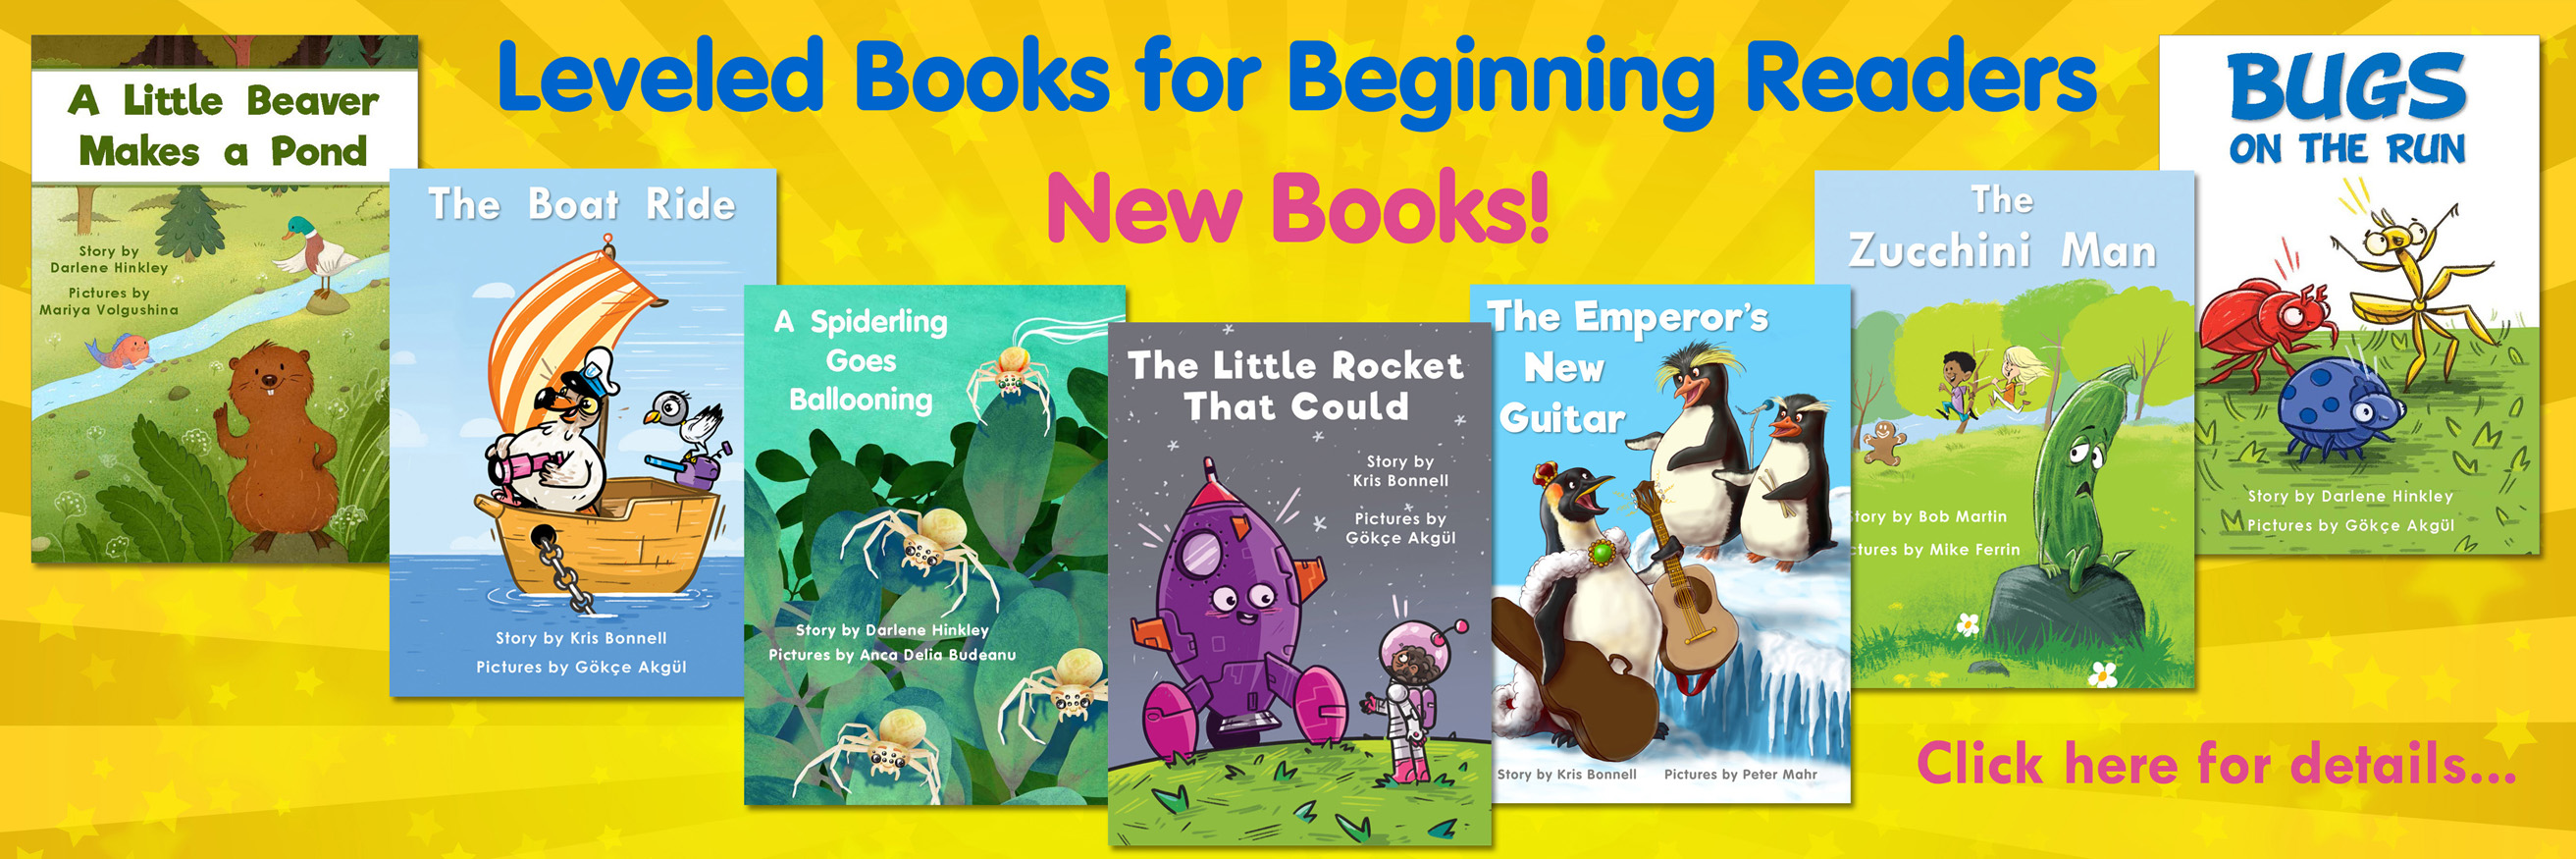 Leveled Books for Beginning Readers New Books Click Here for Details